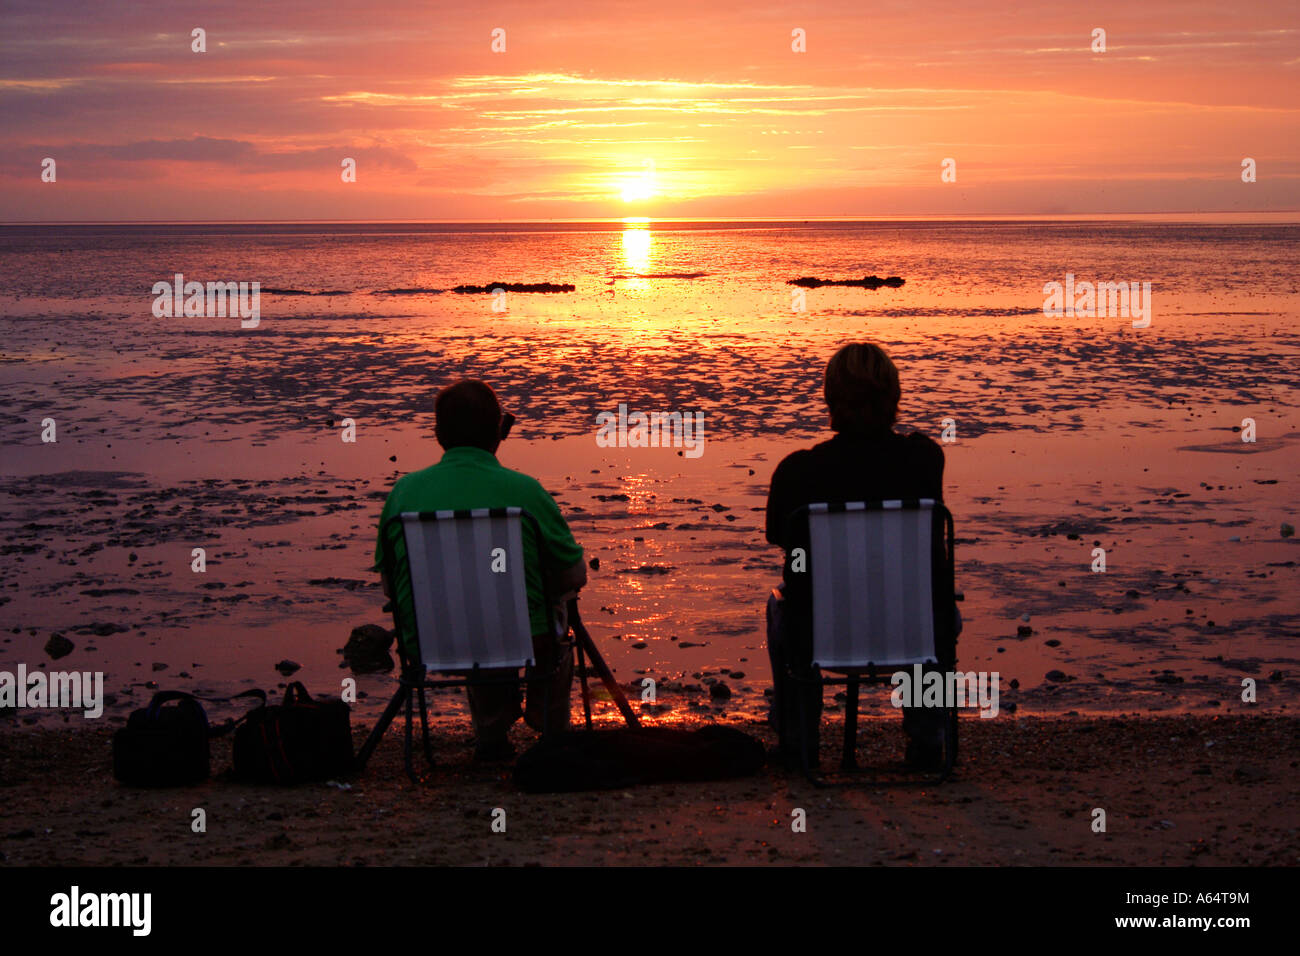 two people sitting on chairs watching a glorious sunset at Snettisham beach, West Norfolk coast, UK - Stock Image